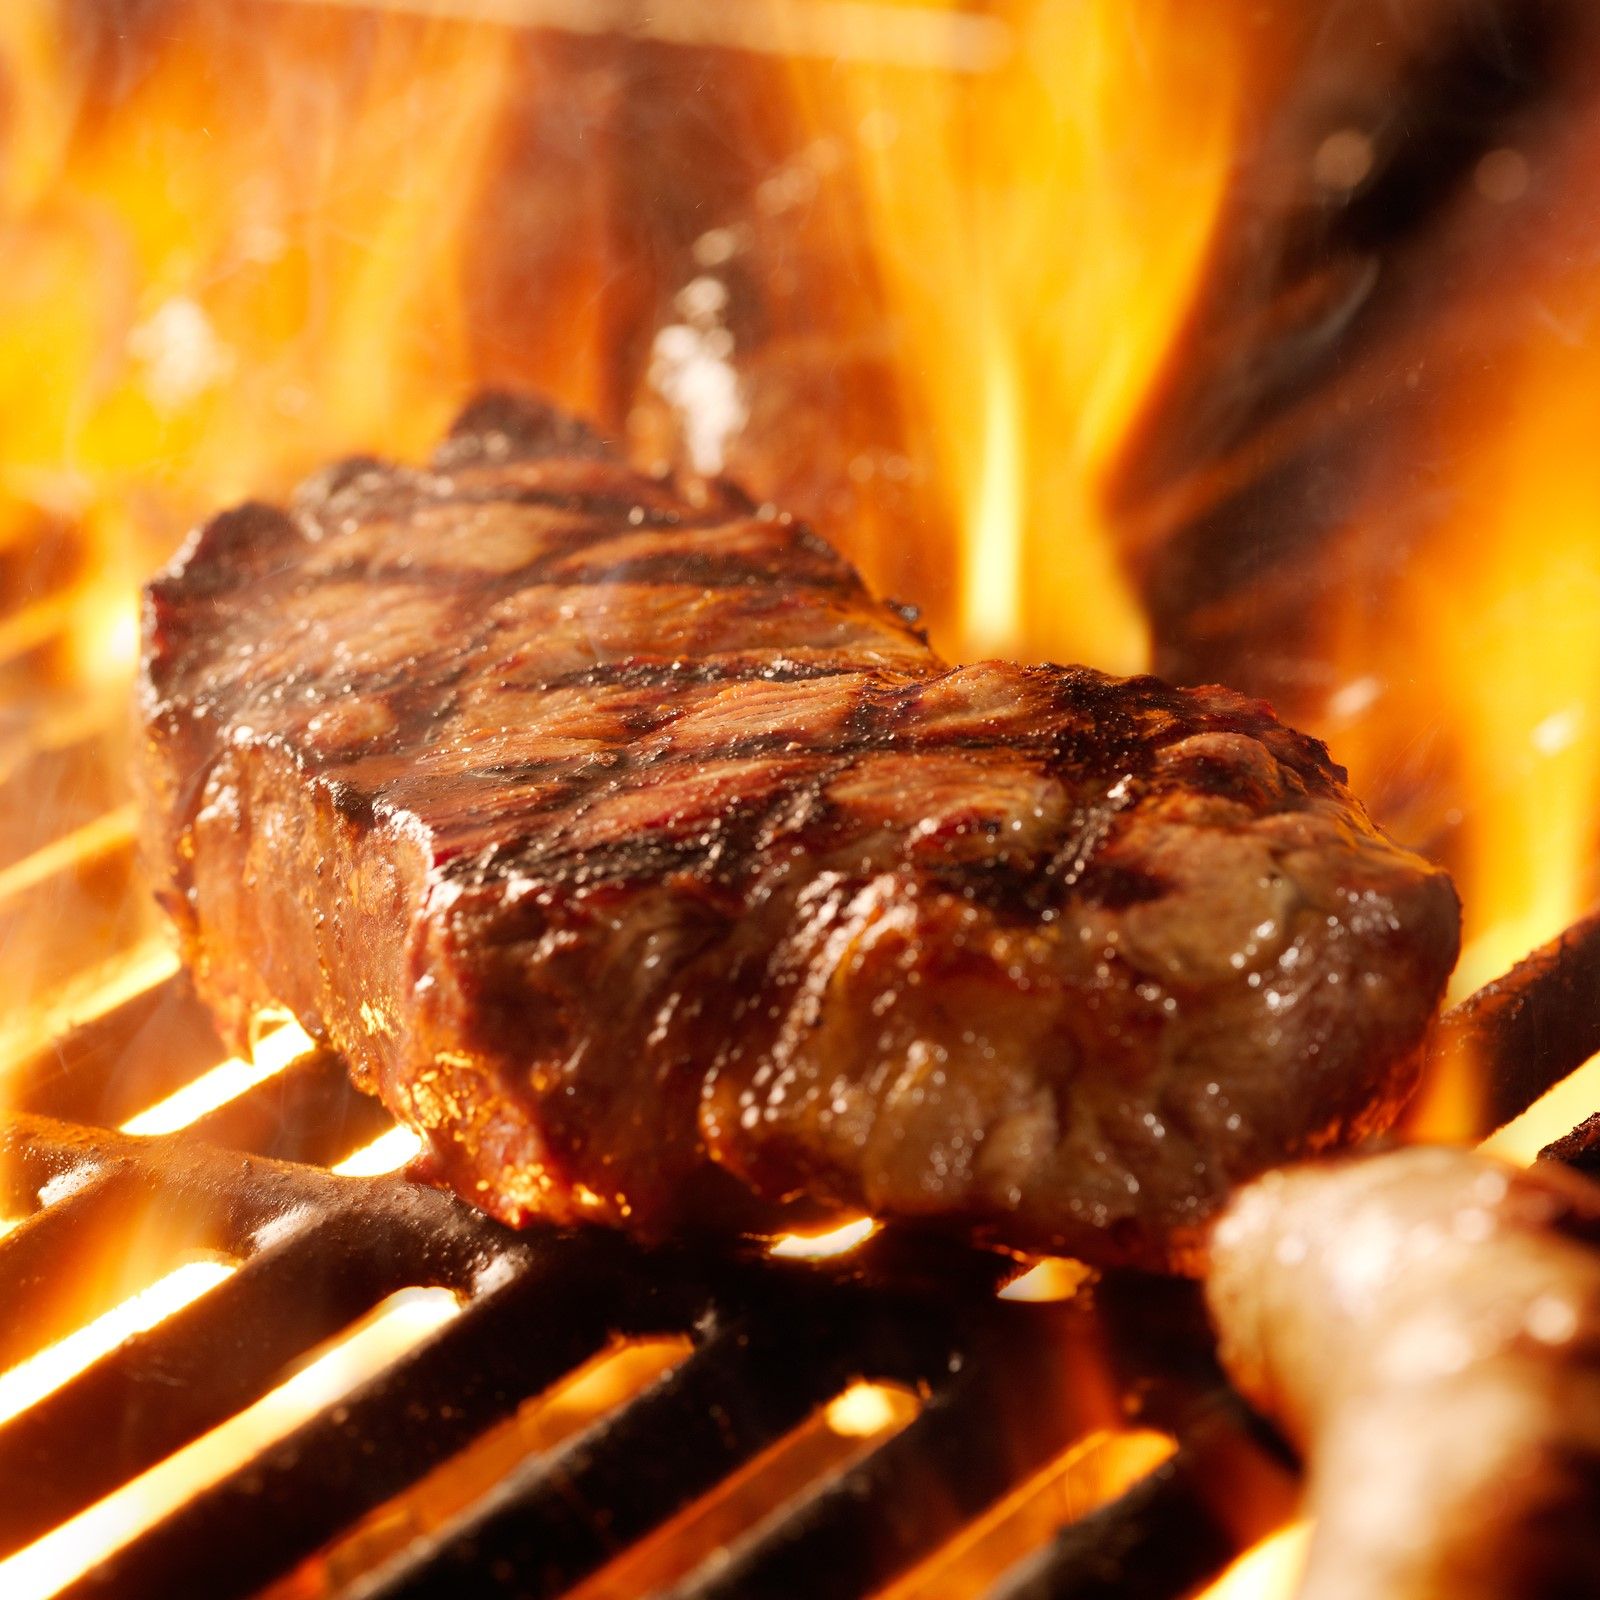 Fire to barbecue photo